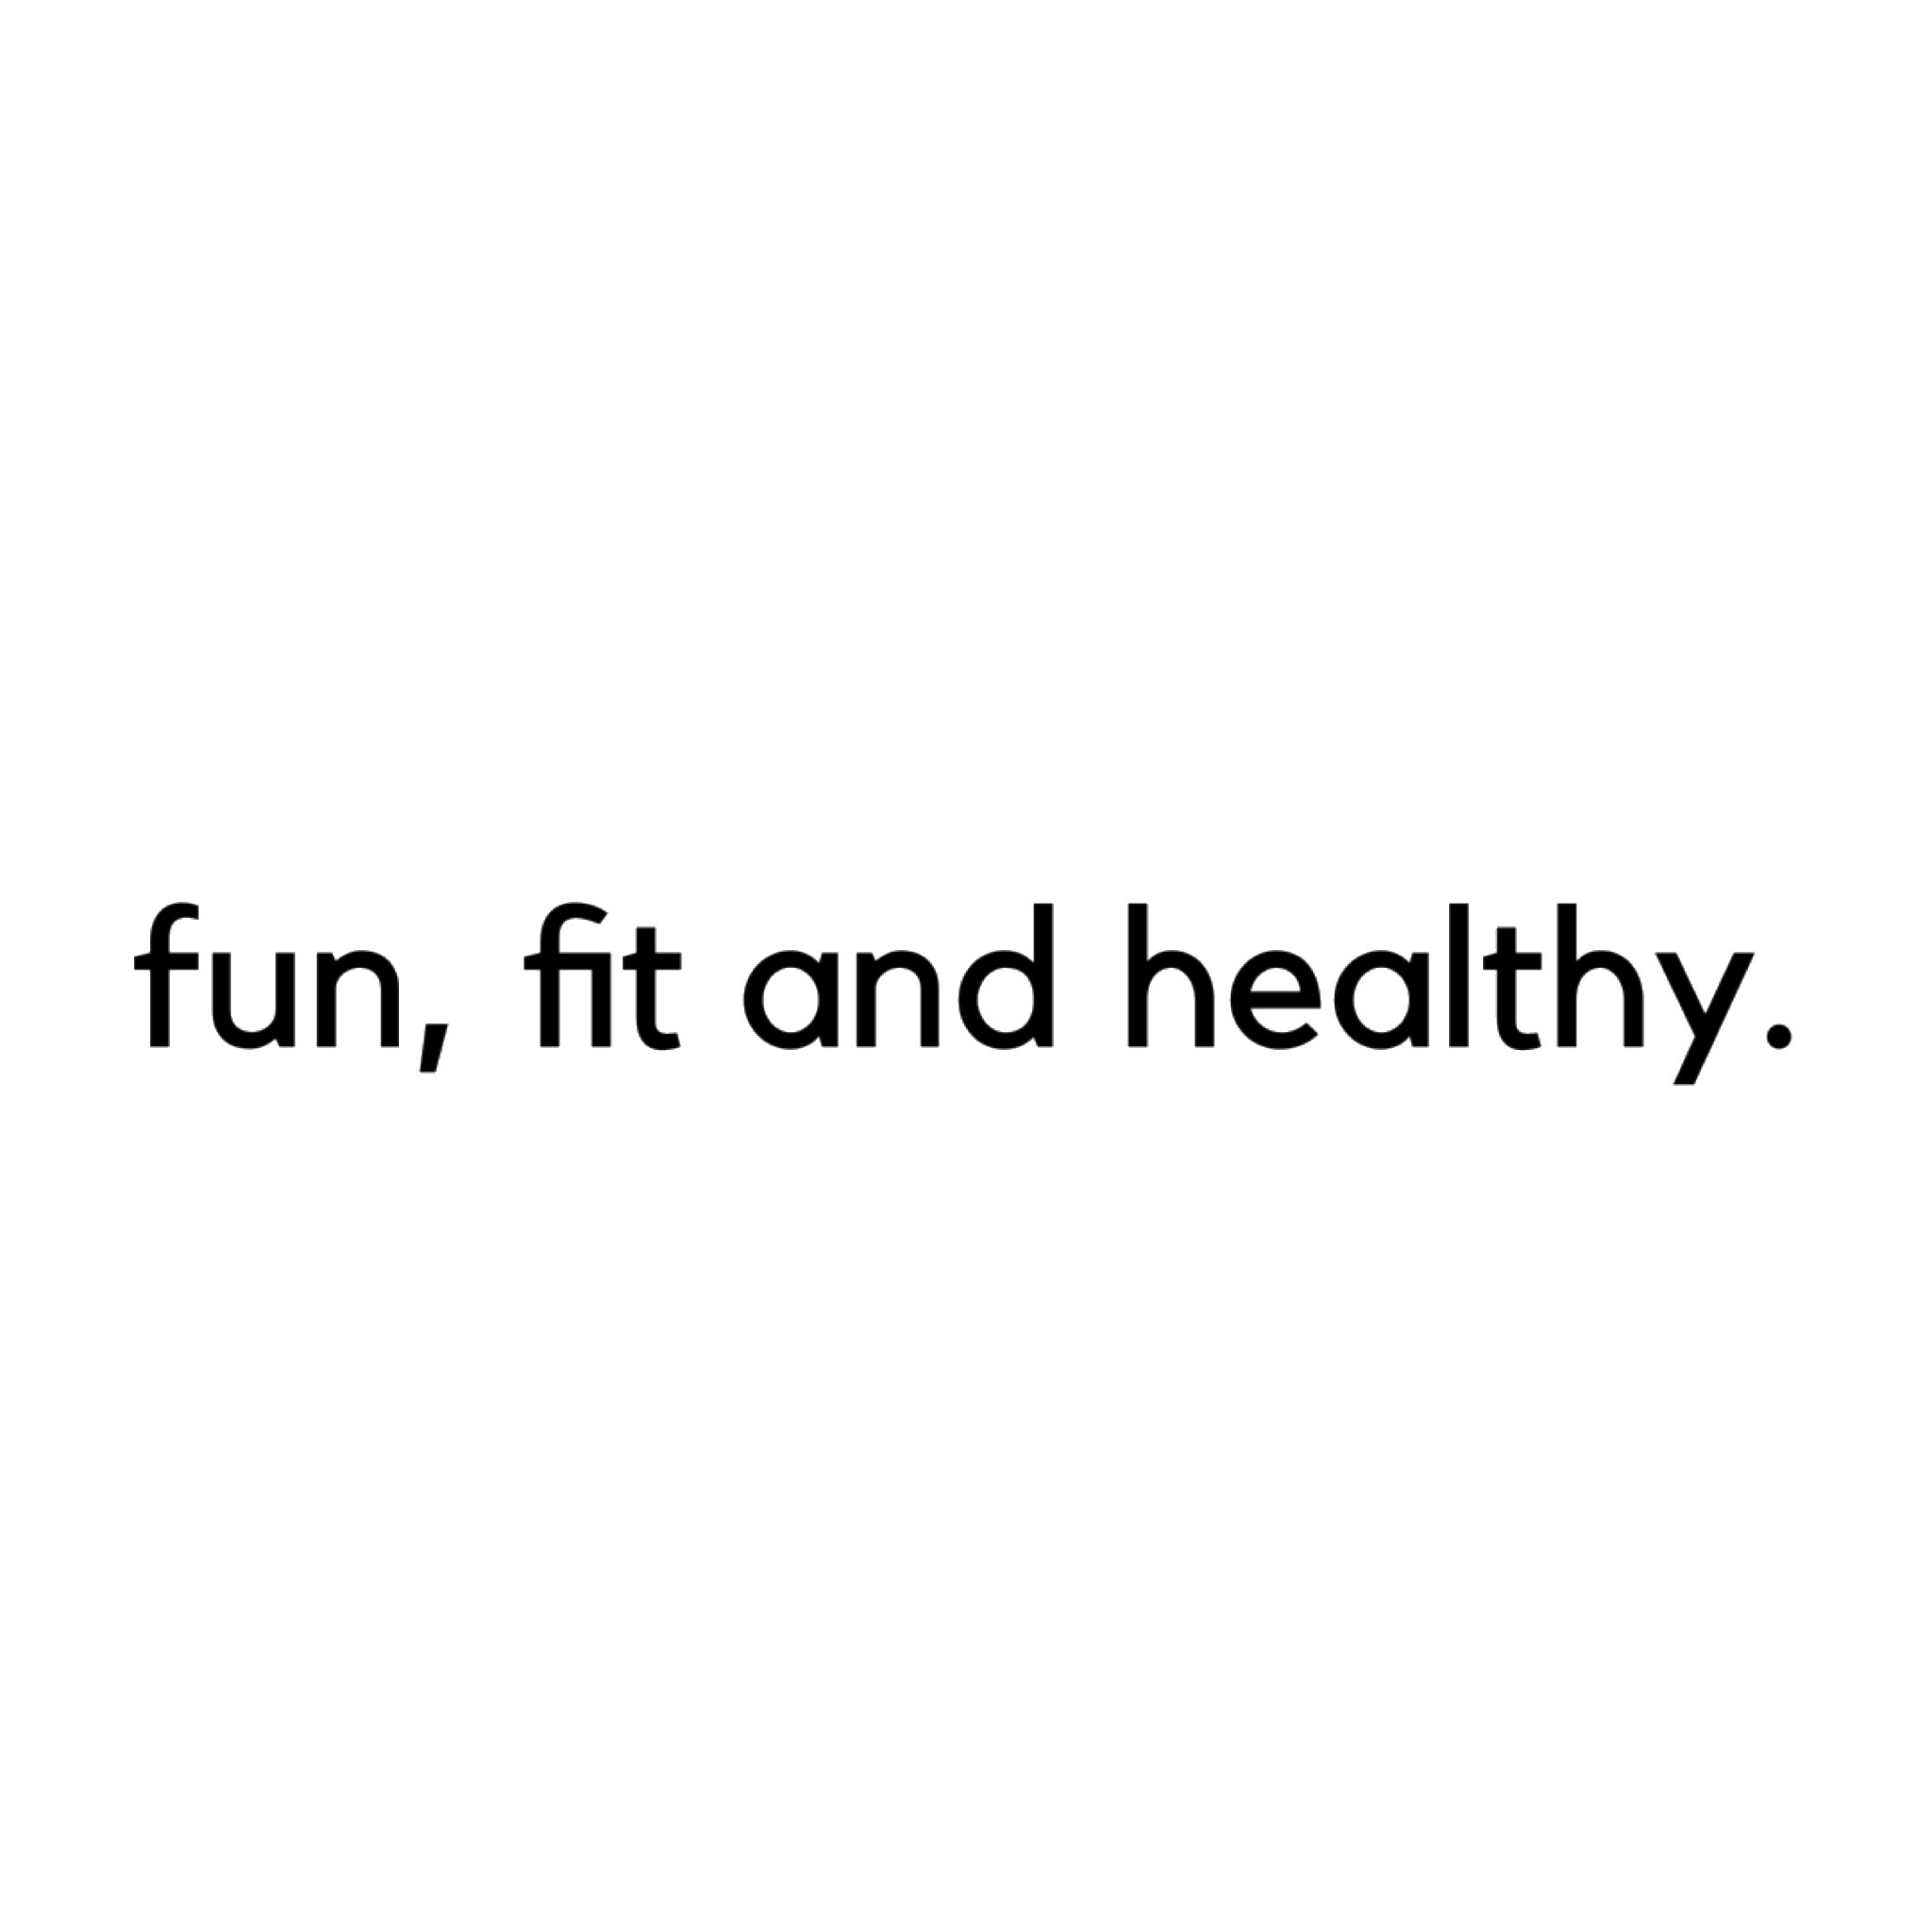 Fun, Fit and Healthy Stickers messages sticker-10